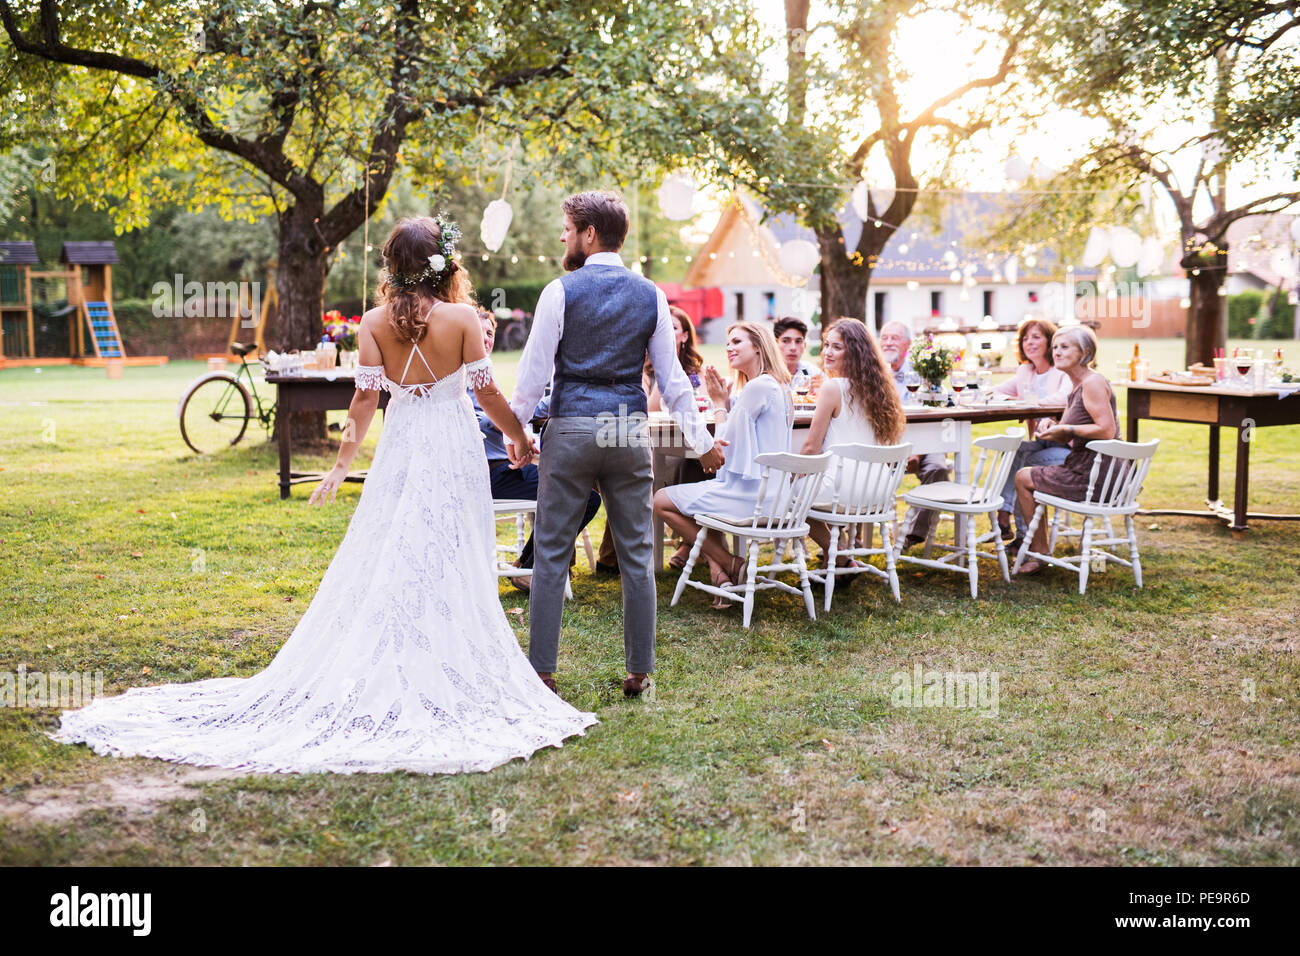 Bride And Groom Holding Hands At Wedding Reception Outside In The